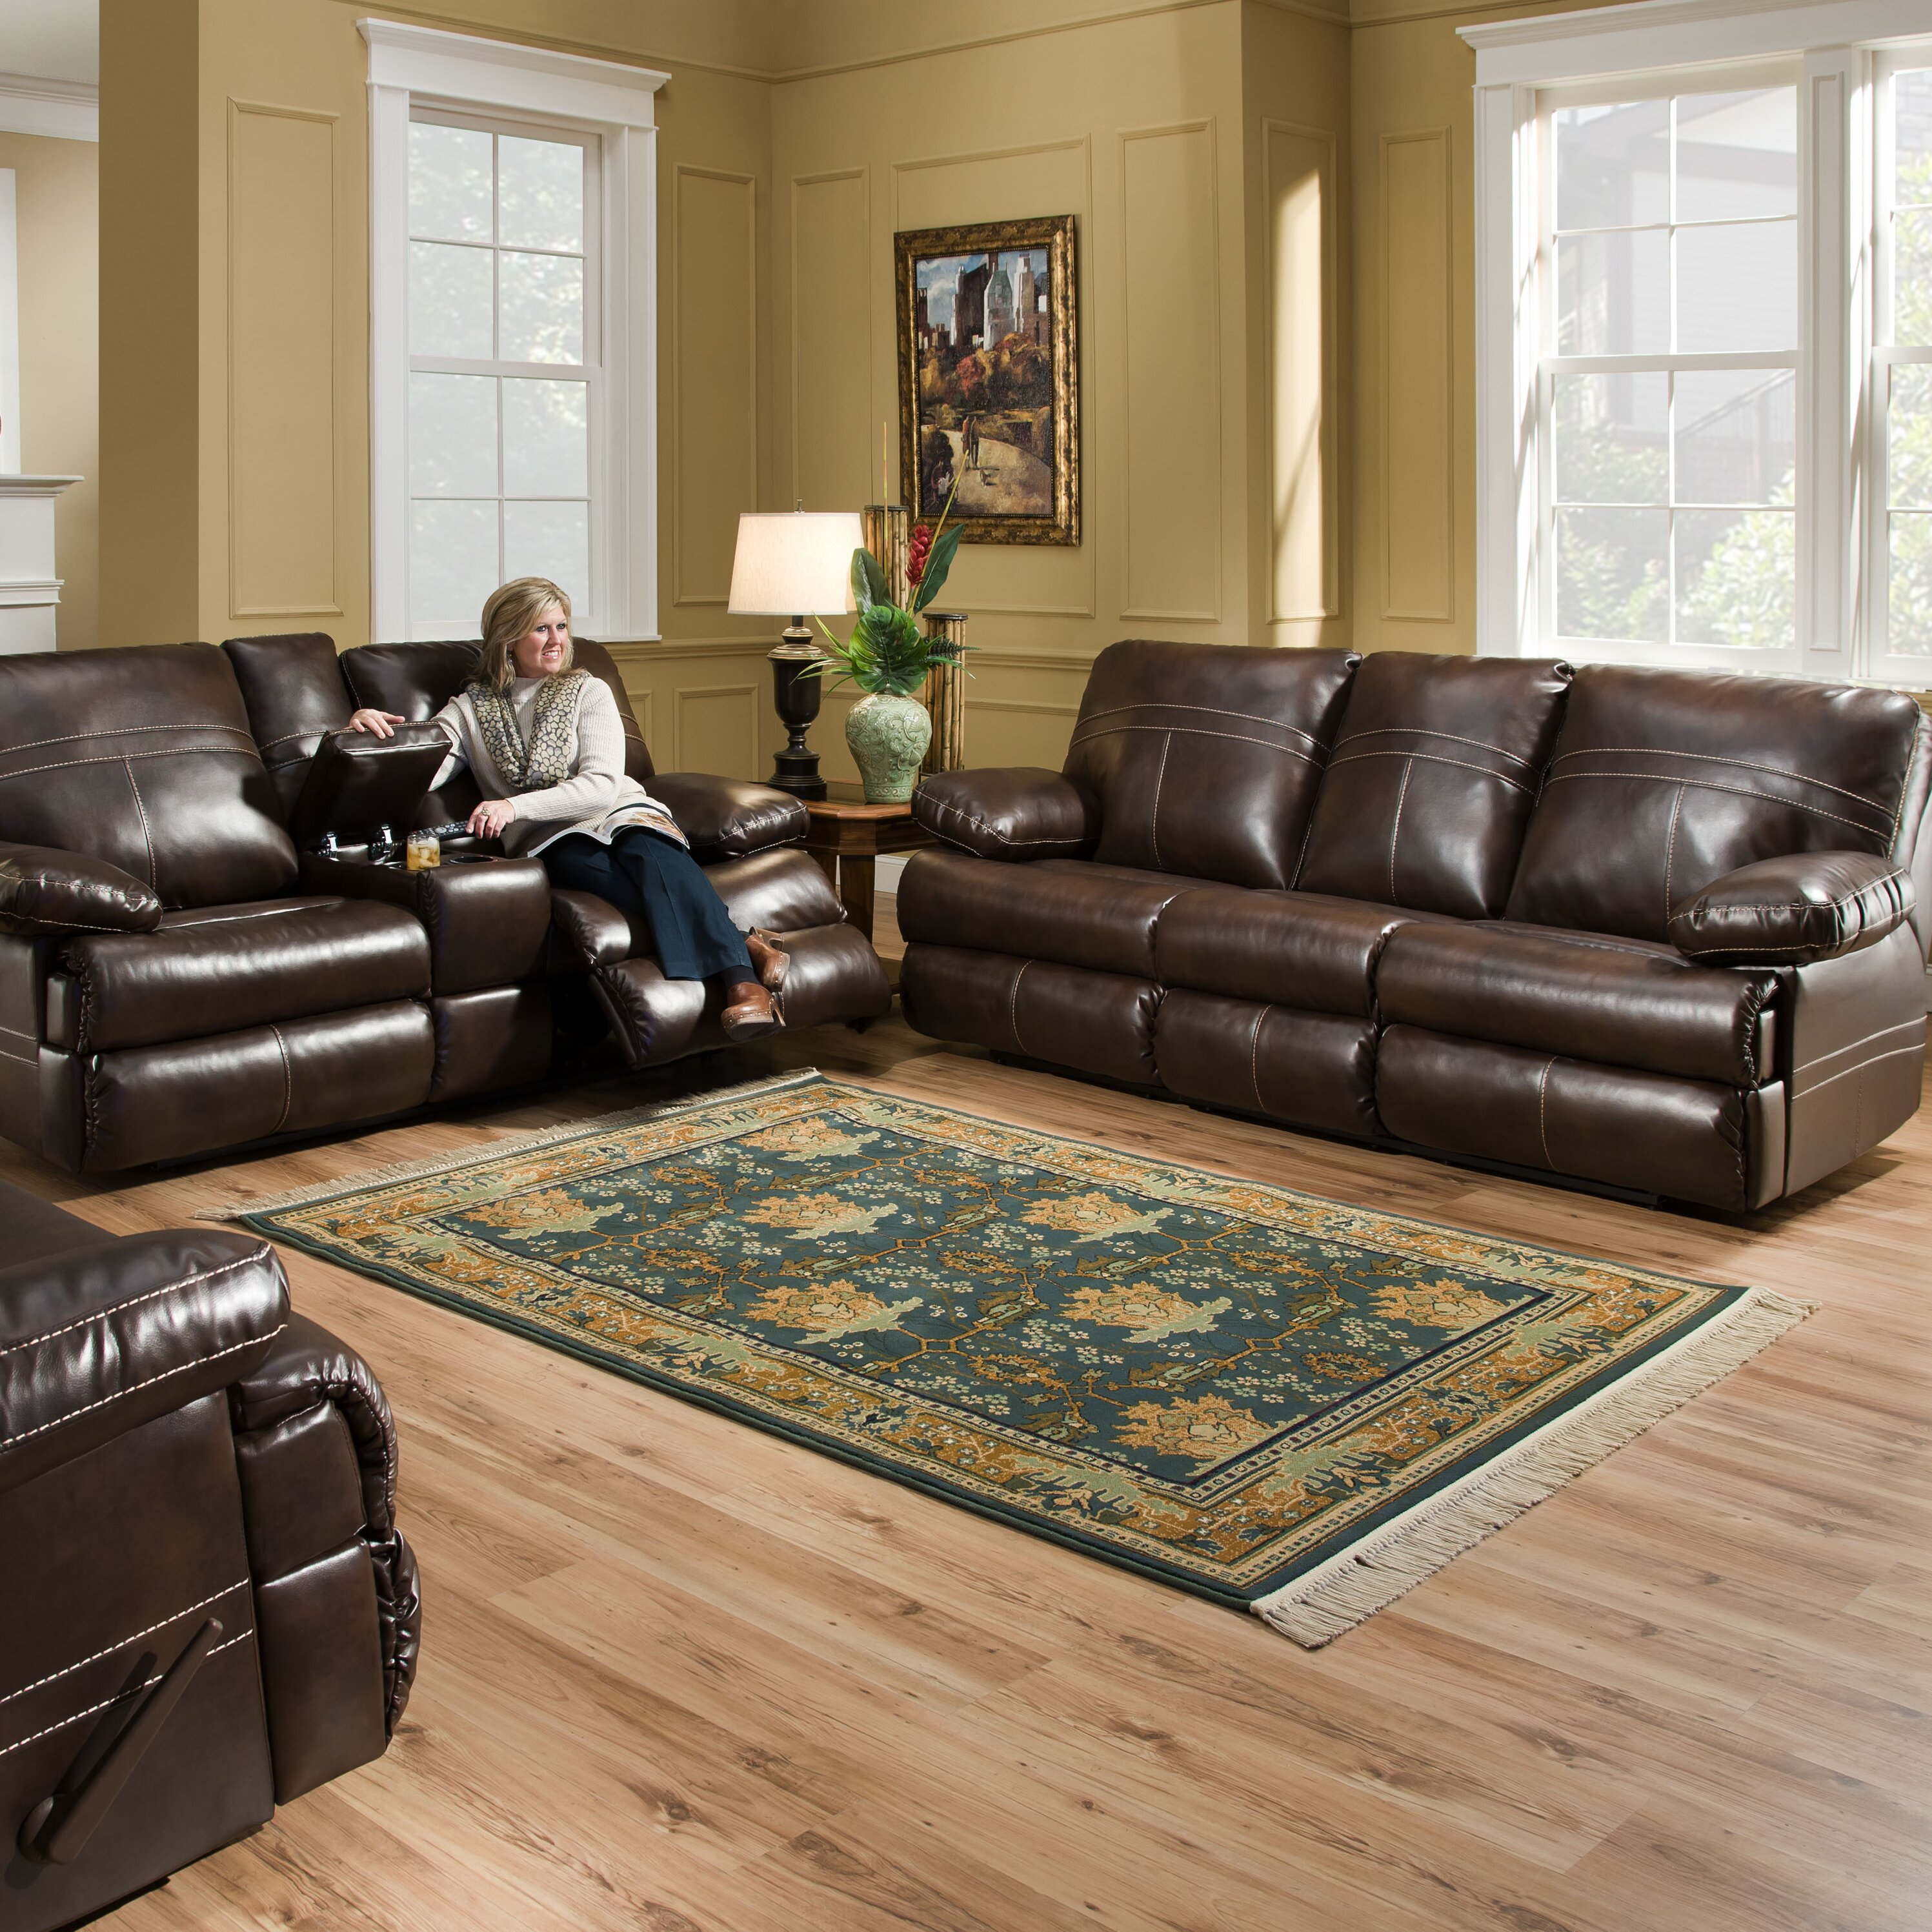 Living Room Furniture Leather And Upholstery Darby Home Co Simmons Upholstery Obryan Sleeper Living Room